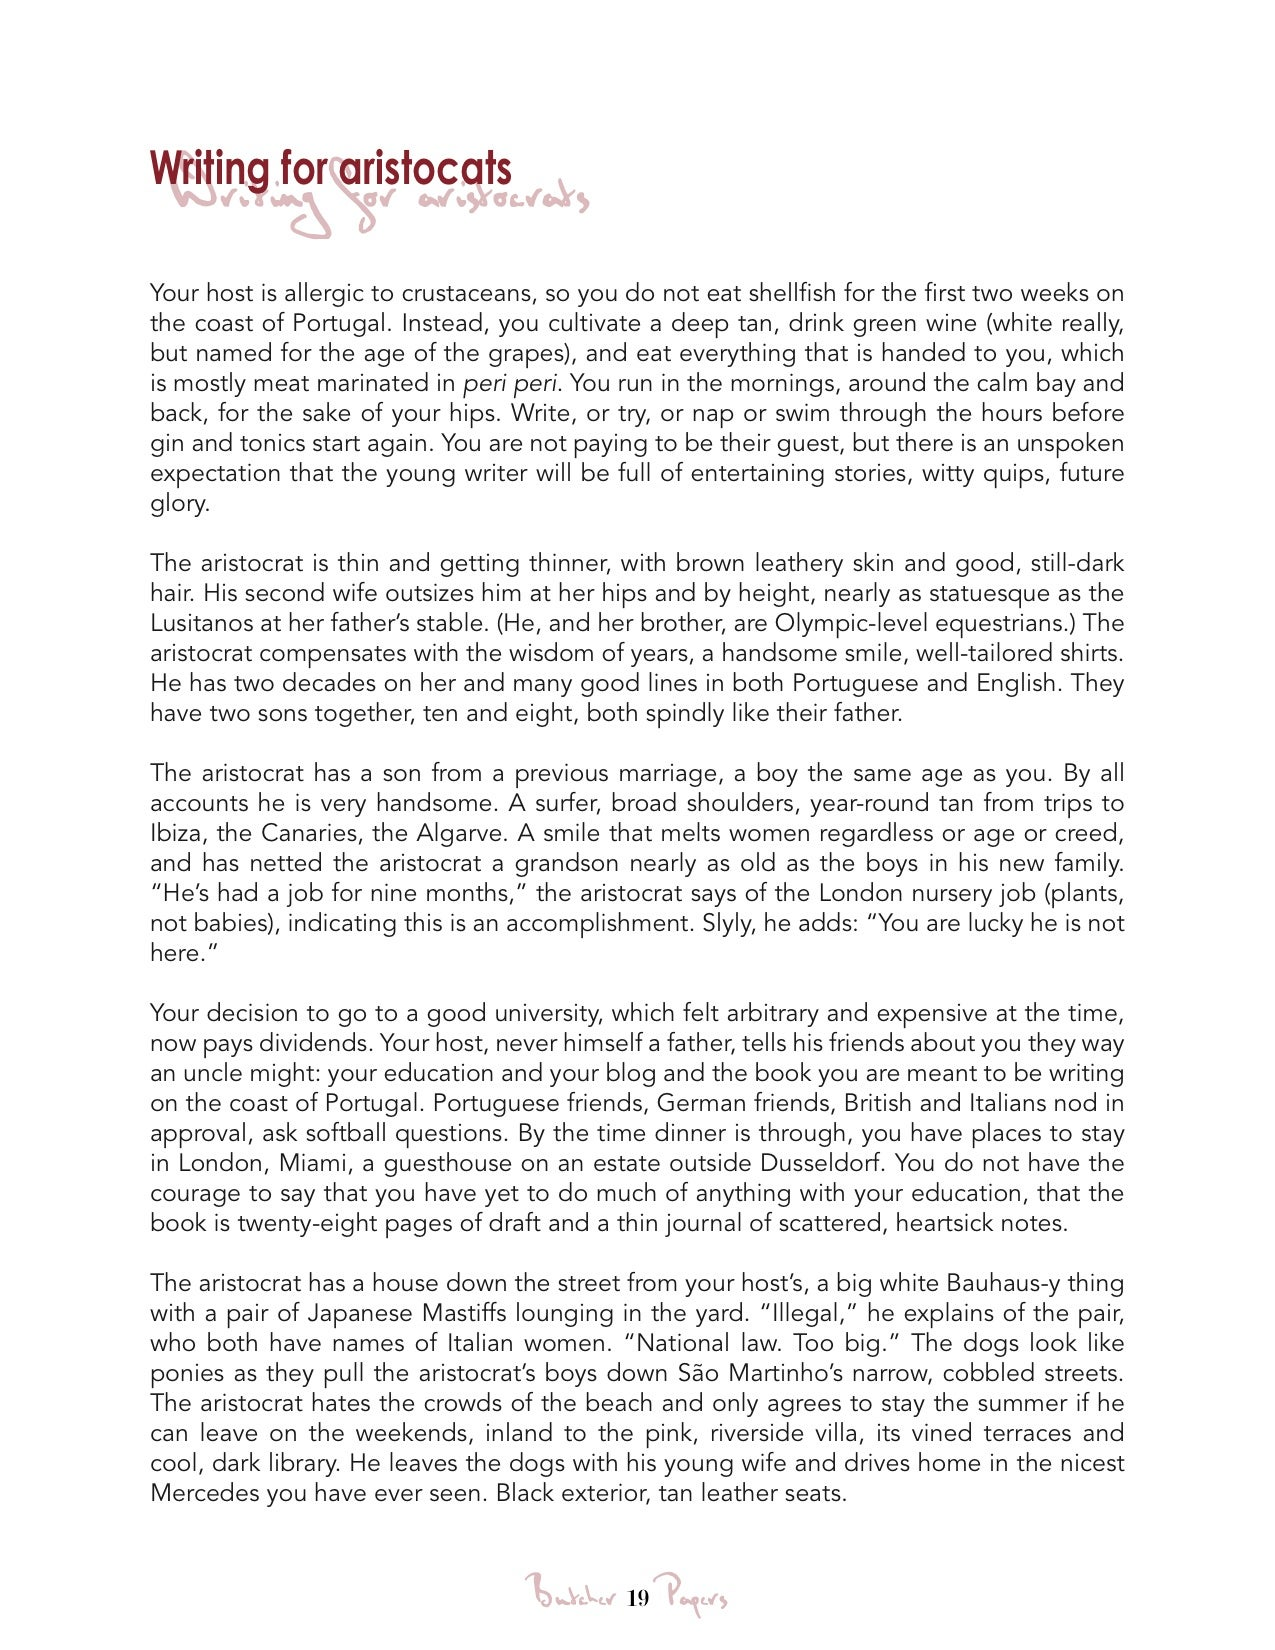 is man good or evil essay This essay was written for my english 9 honors class it details three literary devices william golding uses in lord of the flies to support his contention of man's capacity for evil.